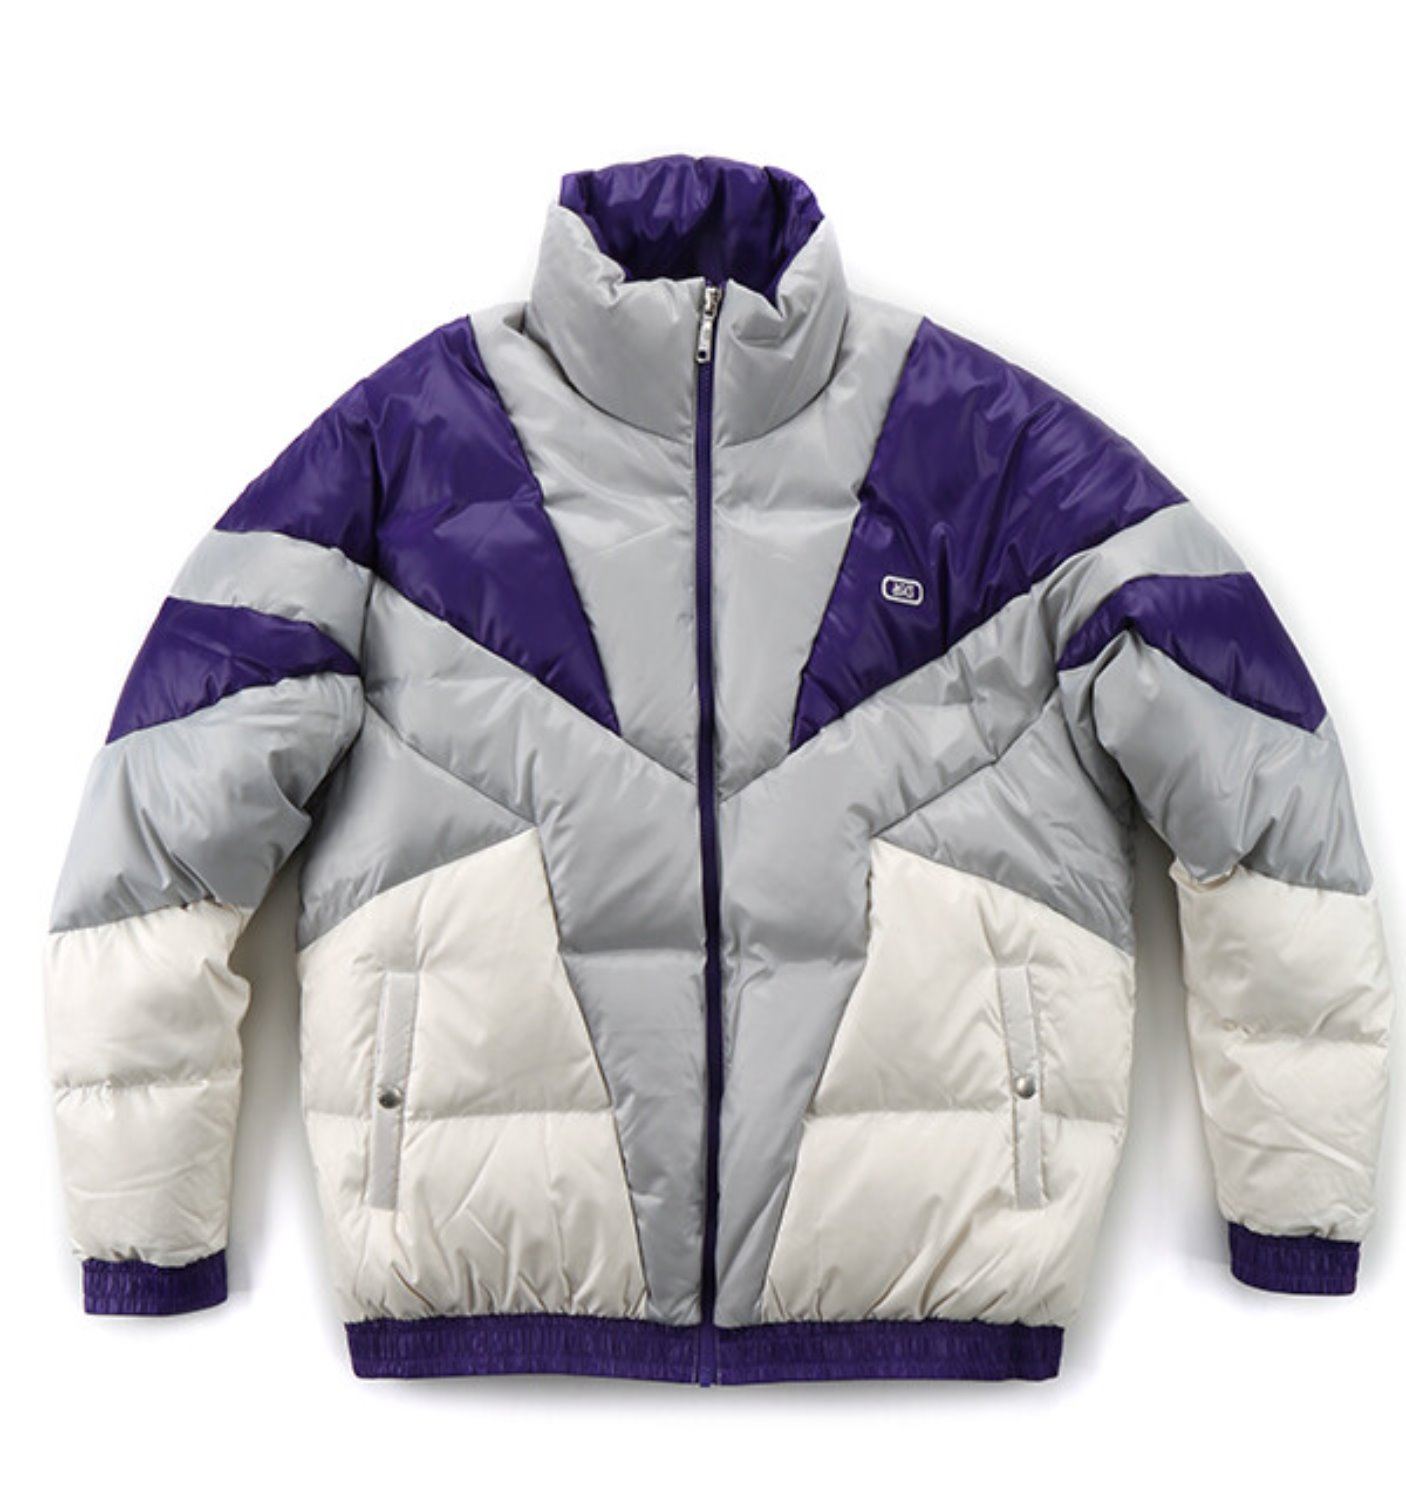 ASICS TIGER DOWN JACKET PURPLE/GREY